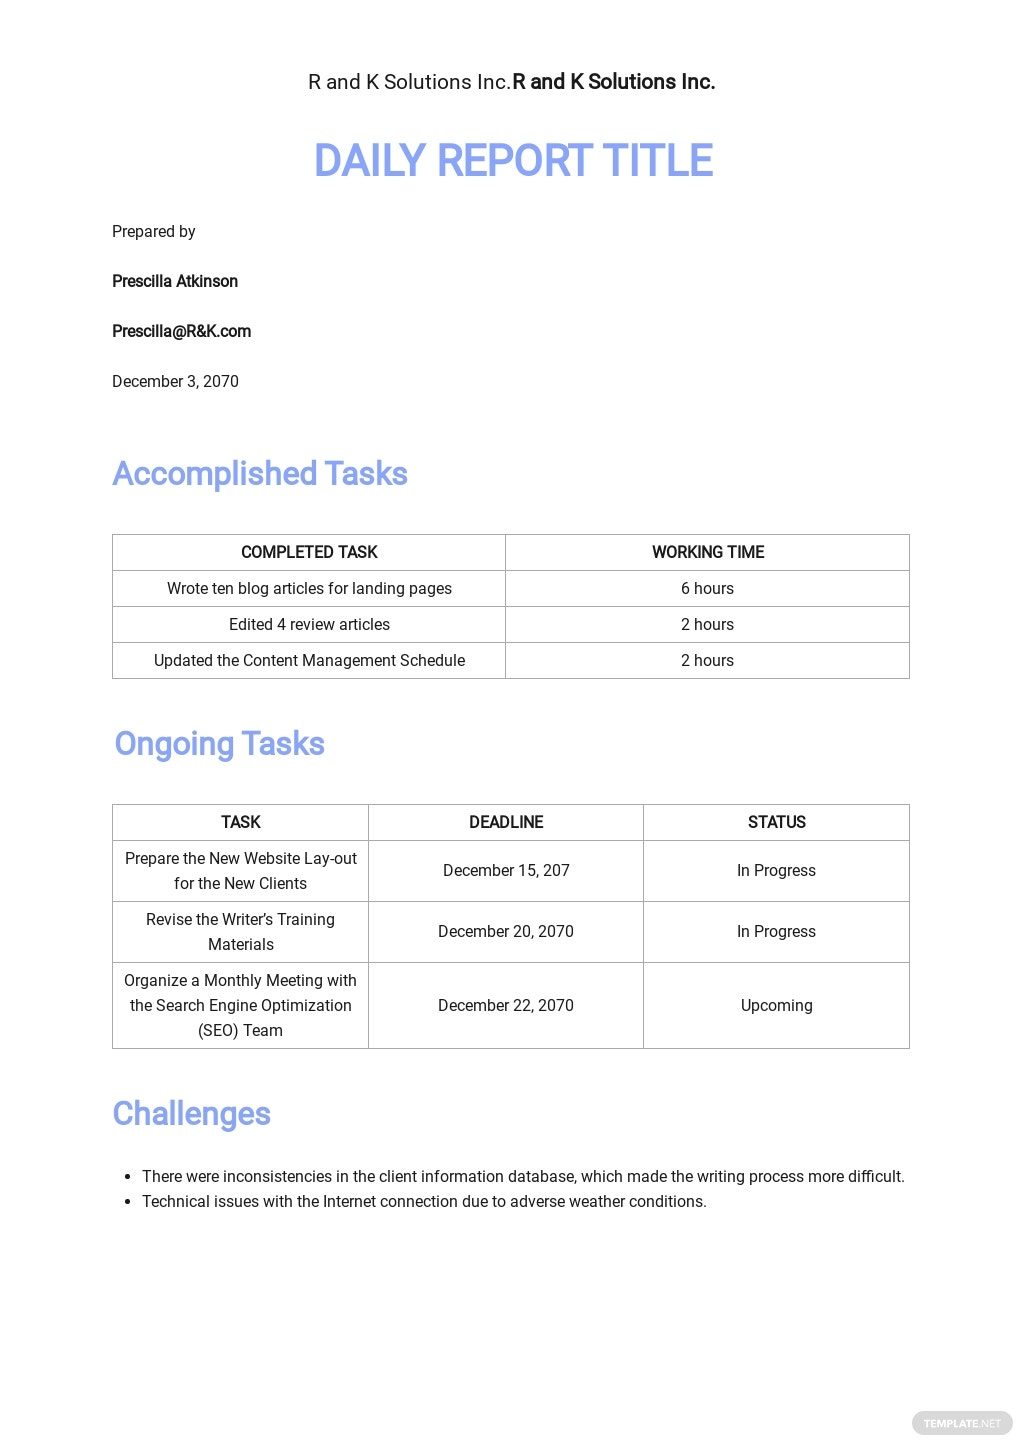 Free Work From Home Daily Report Template.jpe